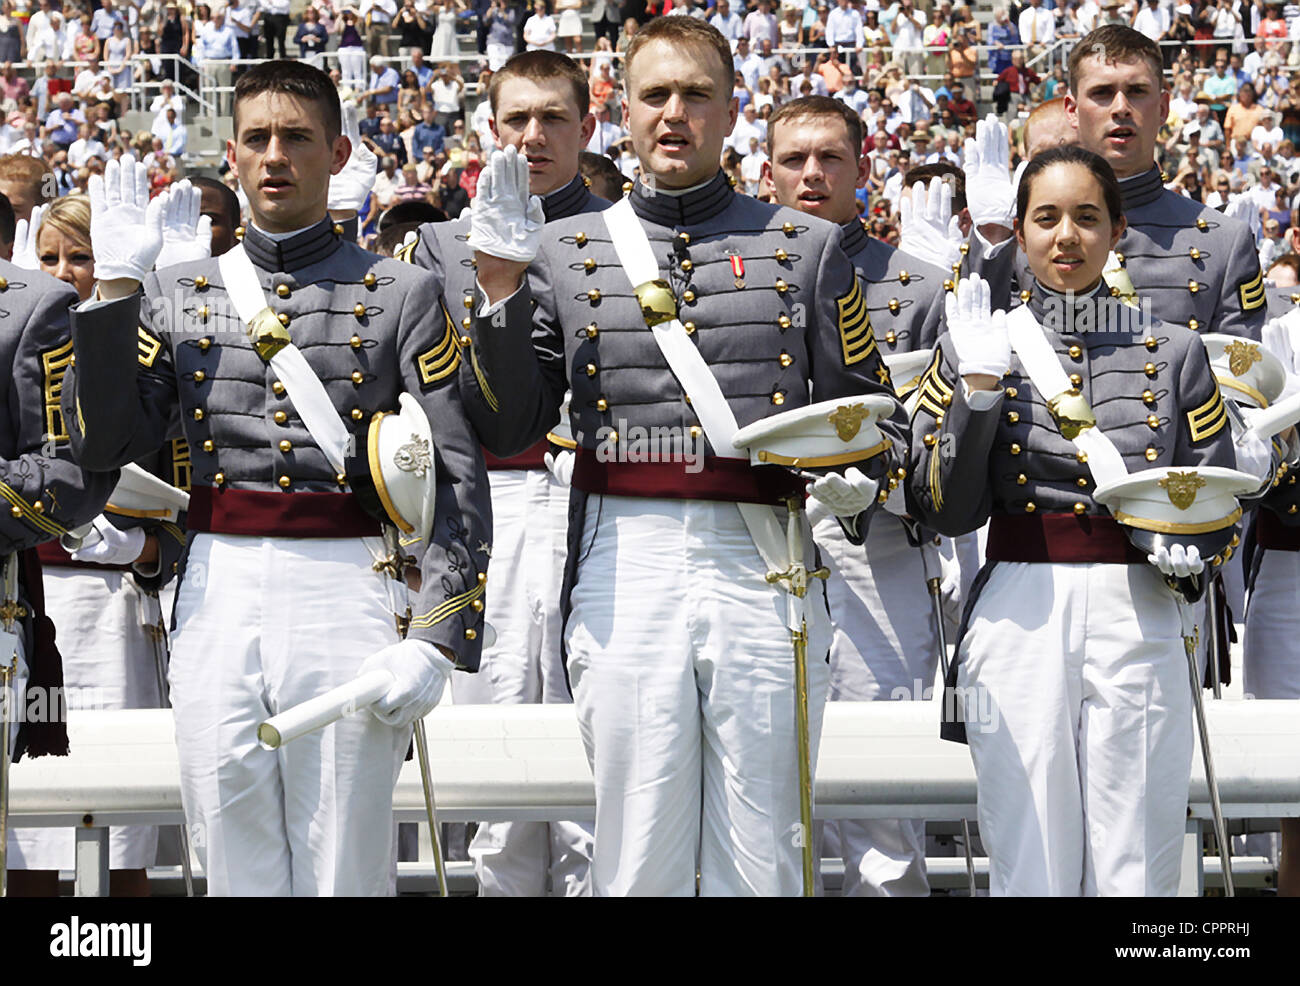 Graduating cadets from the US Military Academy class of 2012 take the oath during ceremonies May 26, 2012 in West - Stock Image